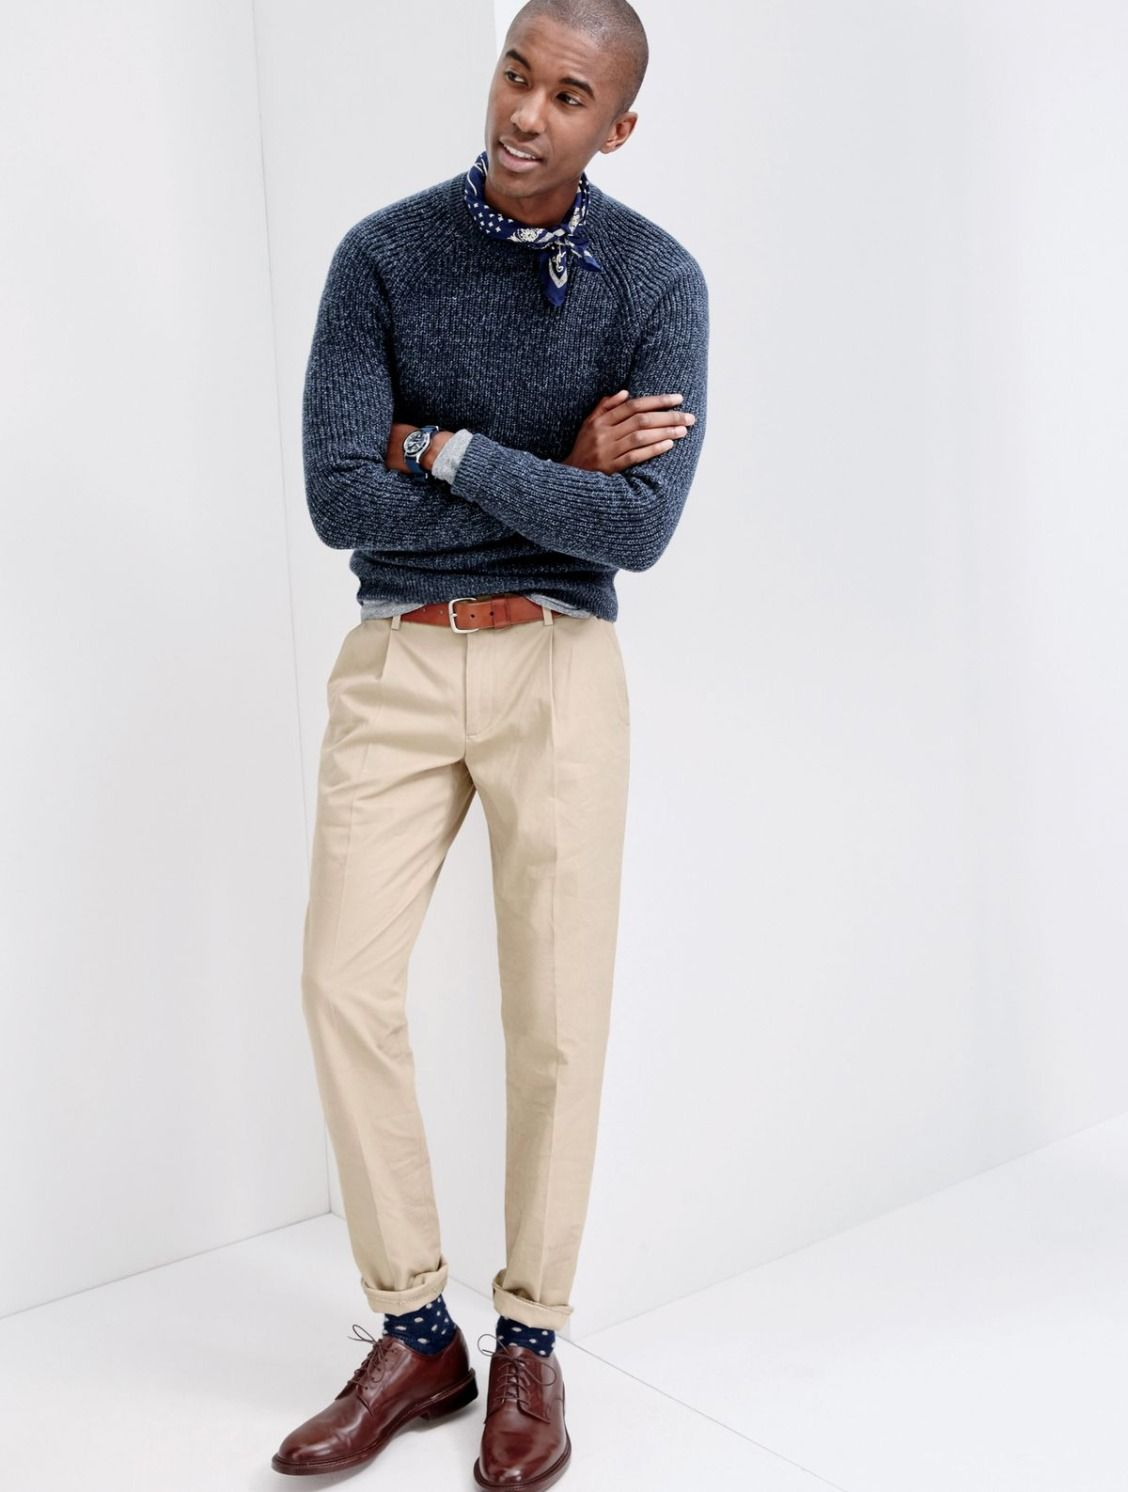 How it's done. Pleats. J.Crew men's slim pleated pants have plenty of sophistication. To make them look a little less formal, try wearing them with a J.Crew rugged sweater and a Garments for Good bandana.